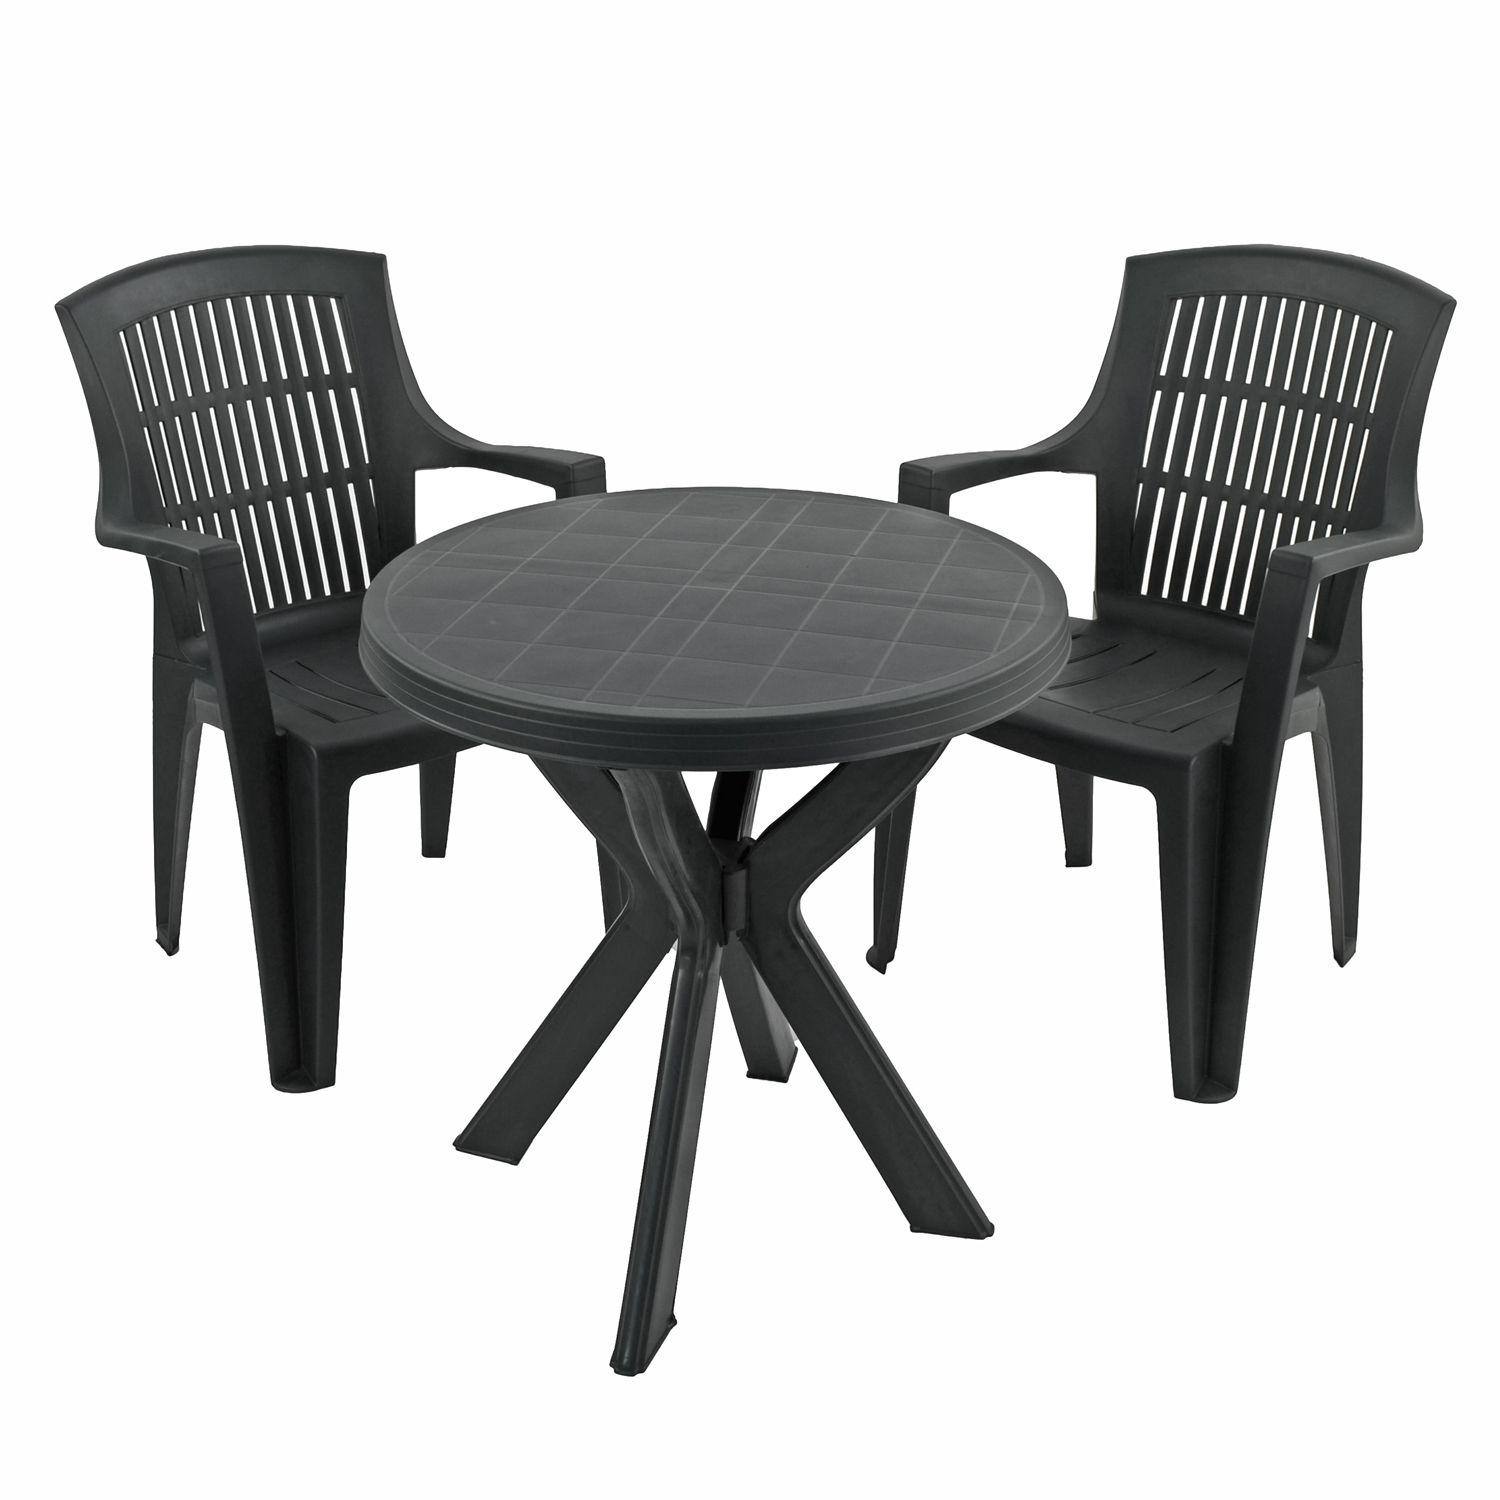 TIVOLI TABLE WITH 2 PARMA CHAIRS SET ANTHRACITE WG1